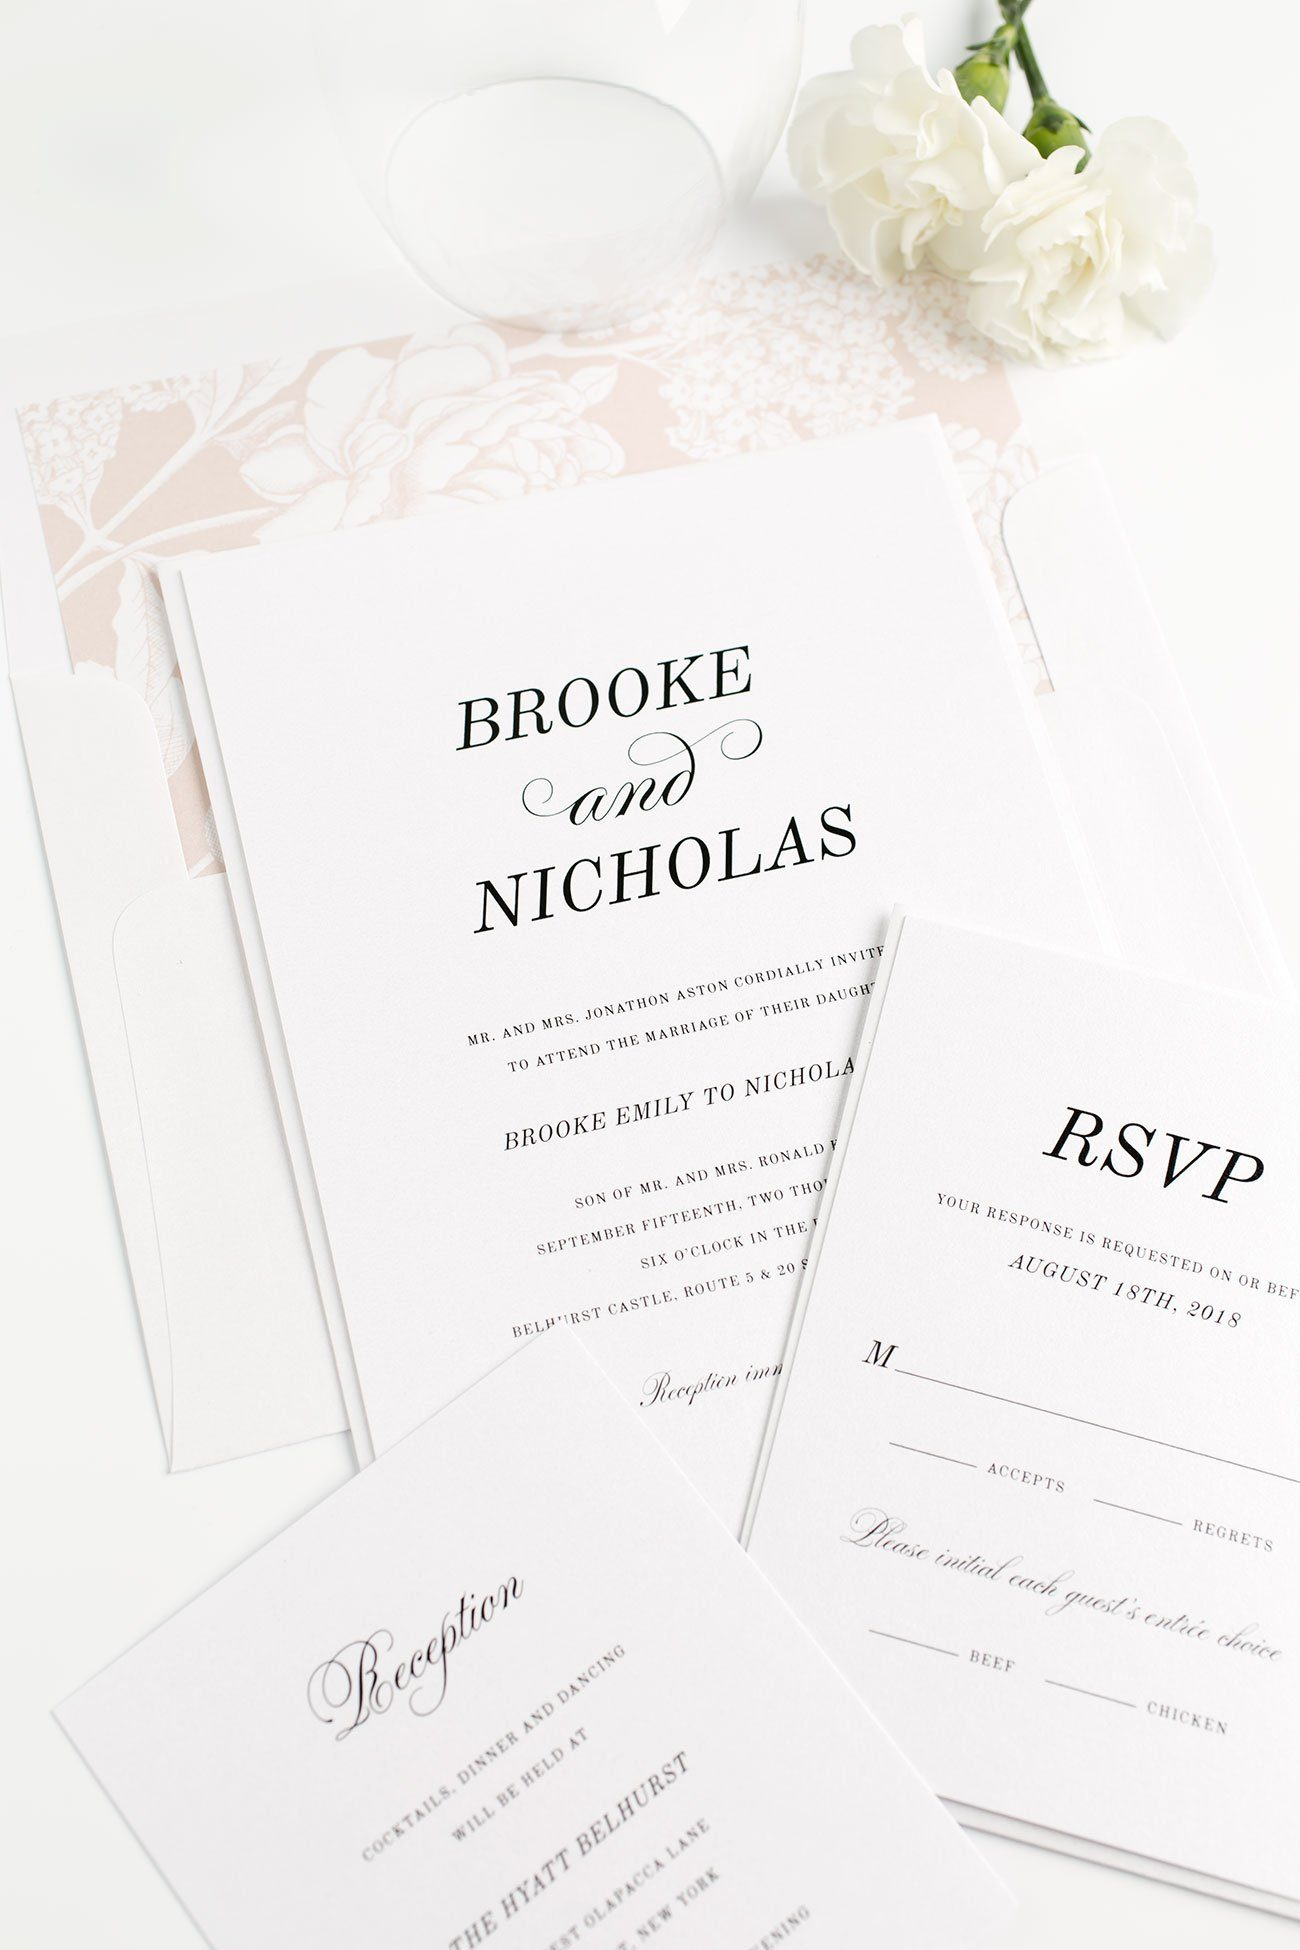 Rose Gold Wedding Invitations with a Floral Envelope Liner